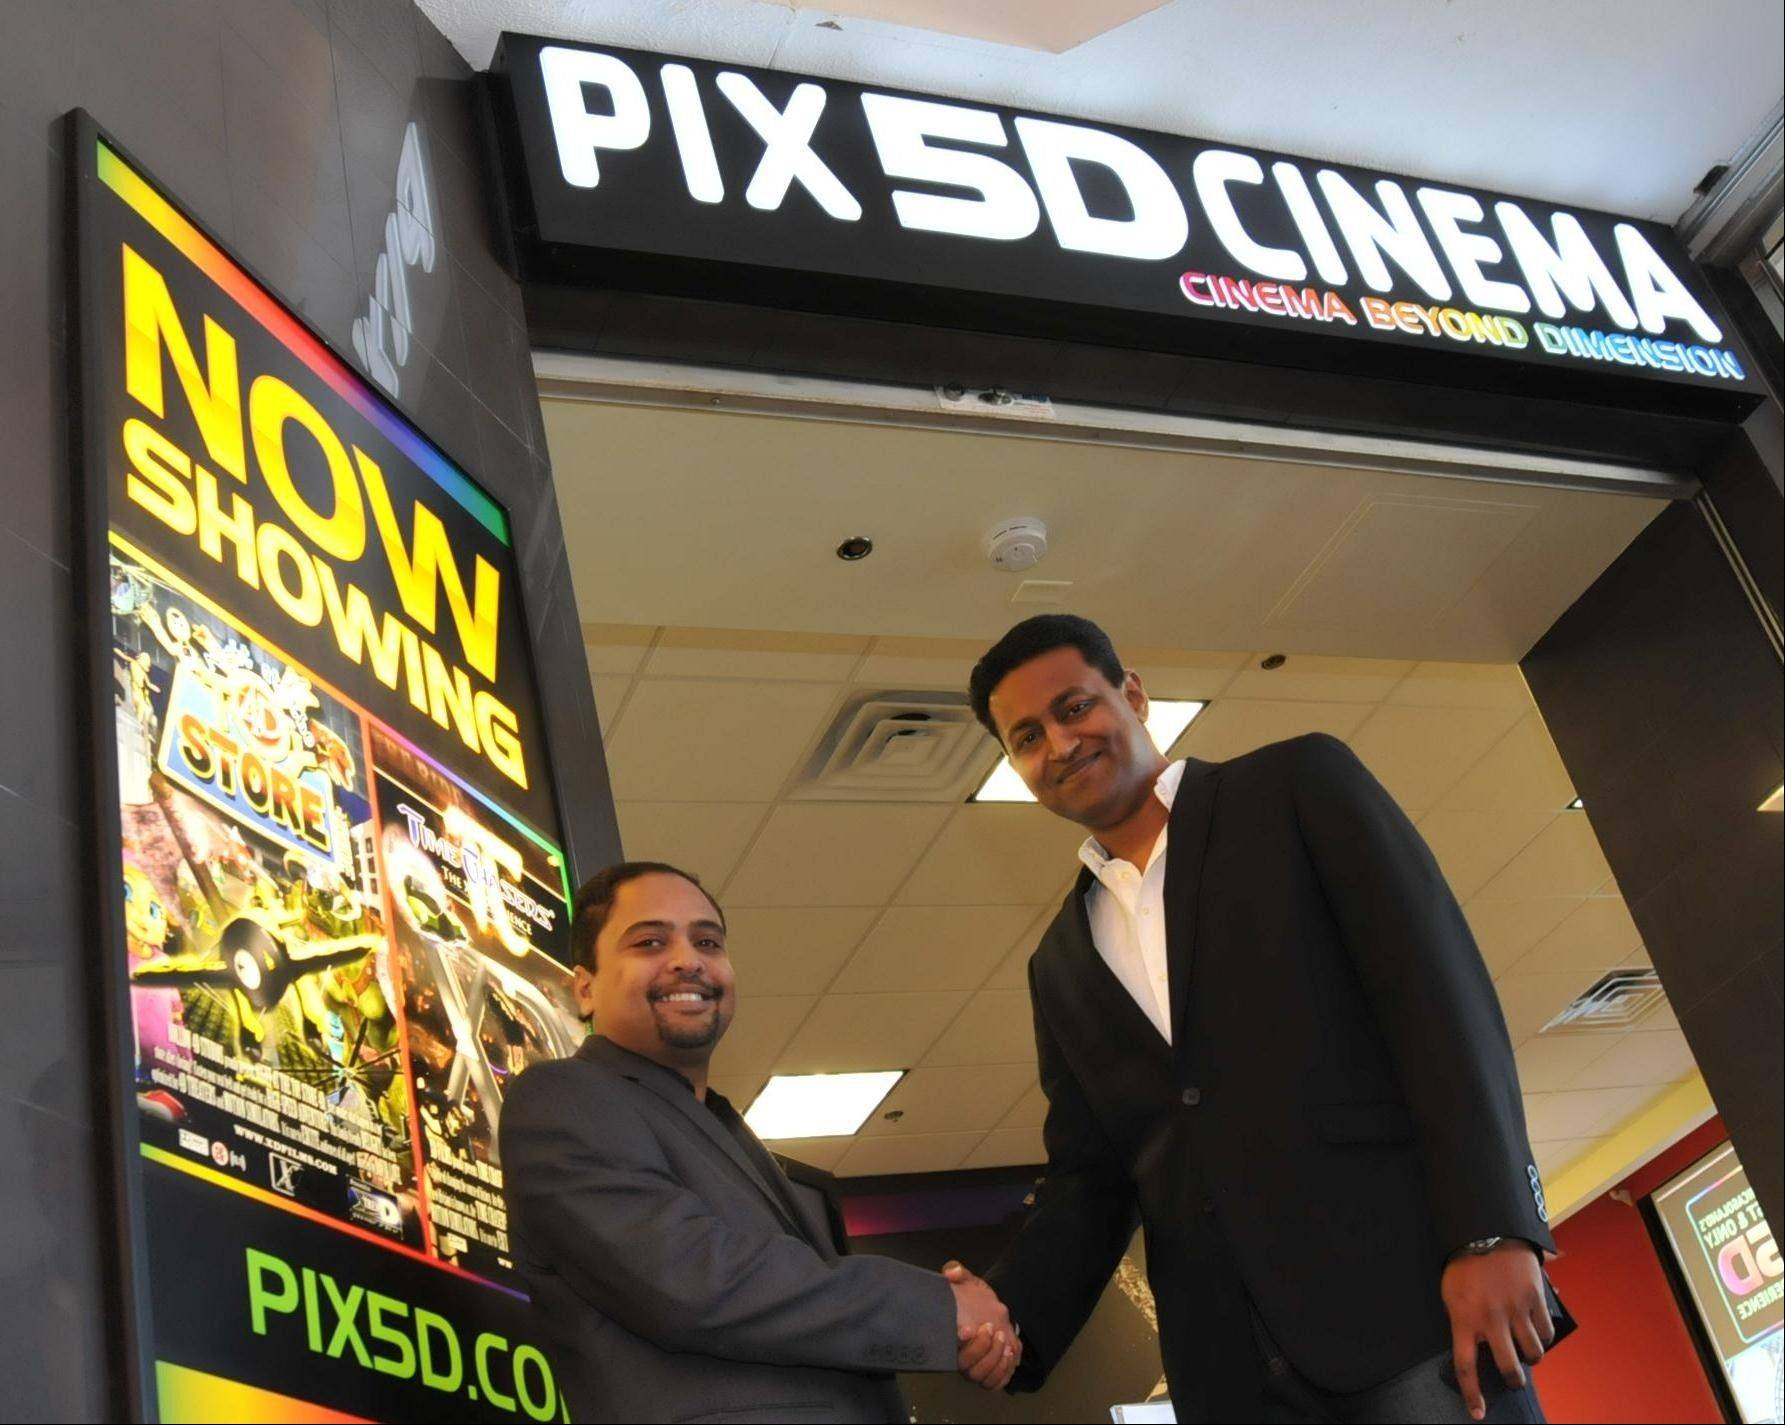 Palatine neighbors Satish Thirumalai, left, and Anand Shanmugan officially open their new enterprise, PIX 5D Cinema, the area's first 5-D theater experience at Woodfield Mall in Schaumburg.